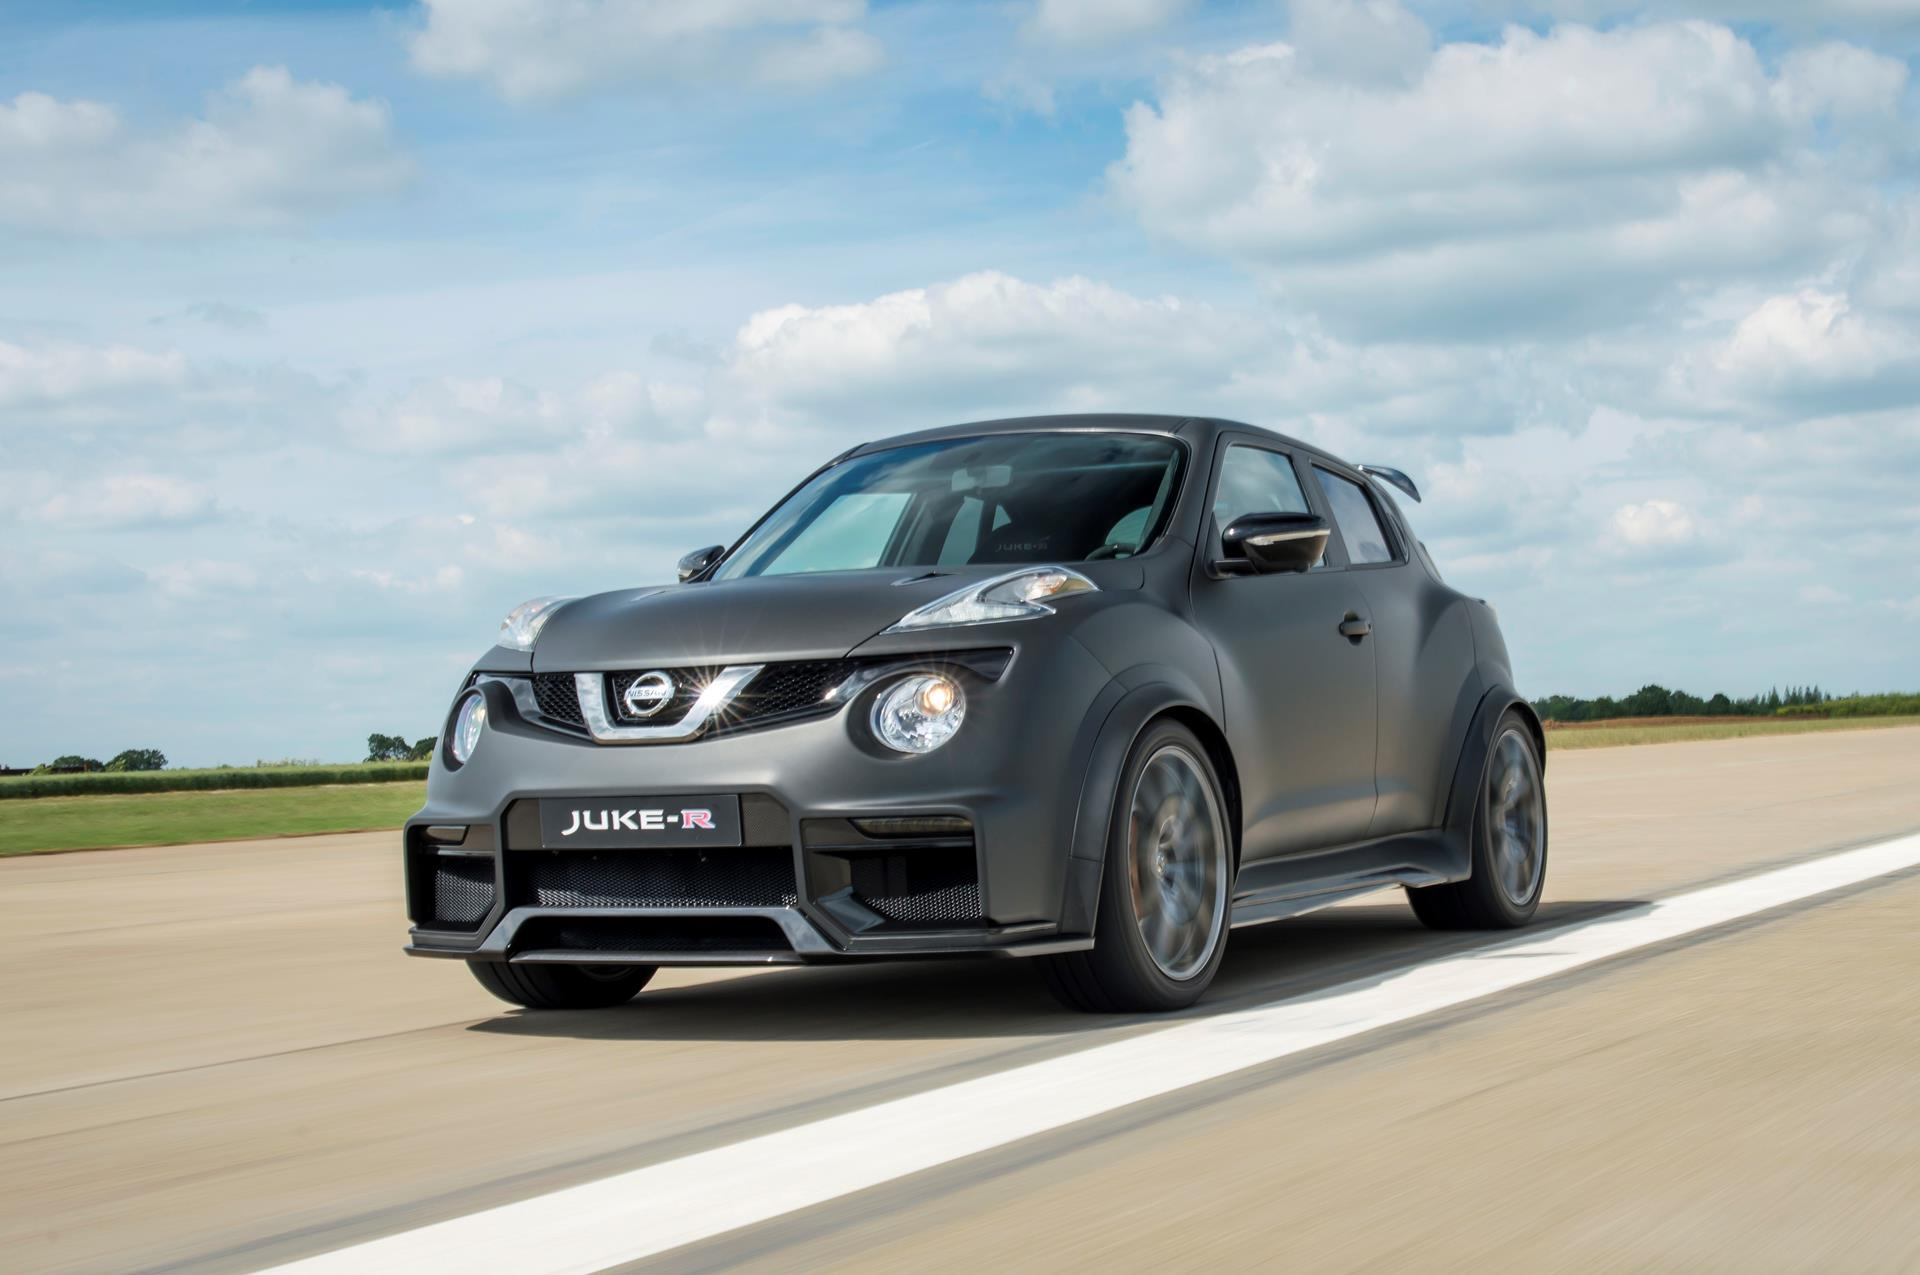 2016 nissan juke r 2 0 news and information for Bereifung nissan juke